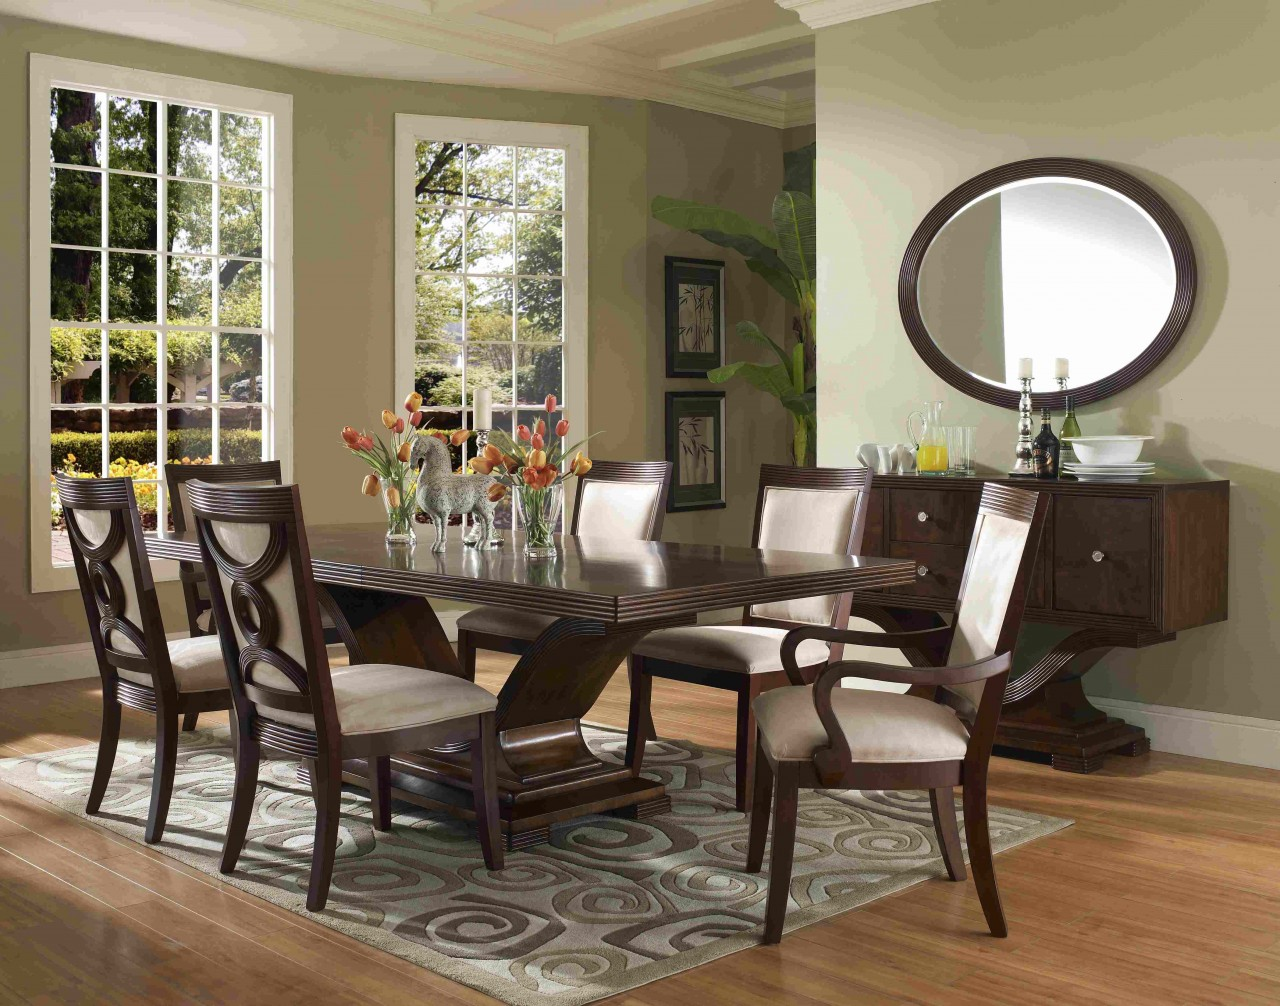 Perfect formal dining room sets for 8 homesfeed for Formal dining room sets modern